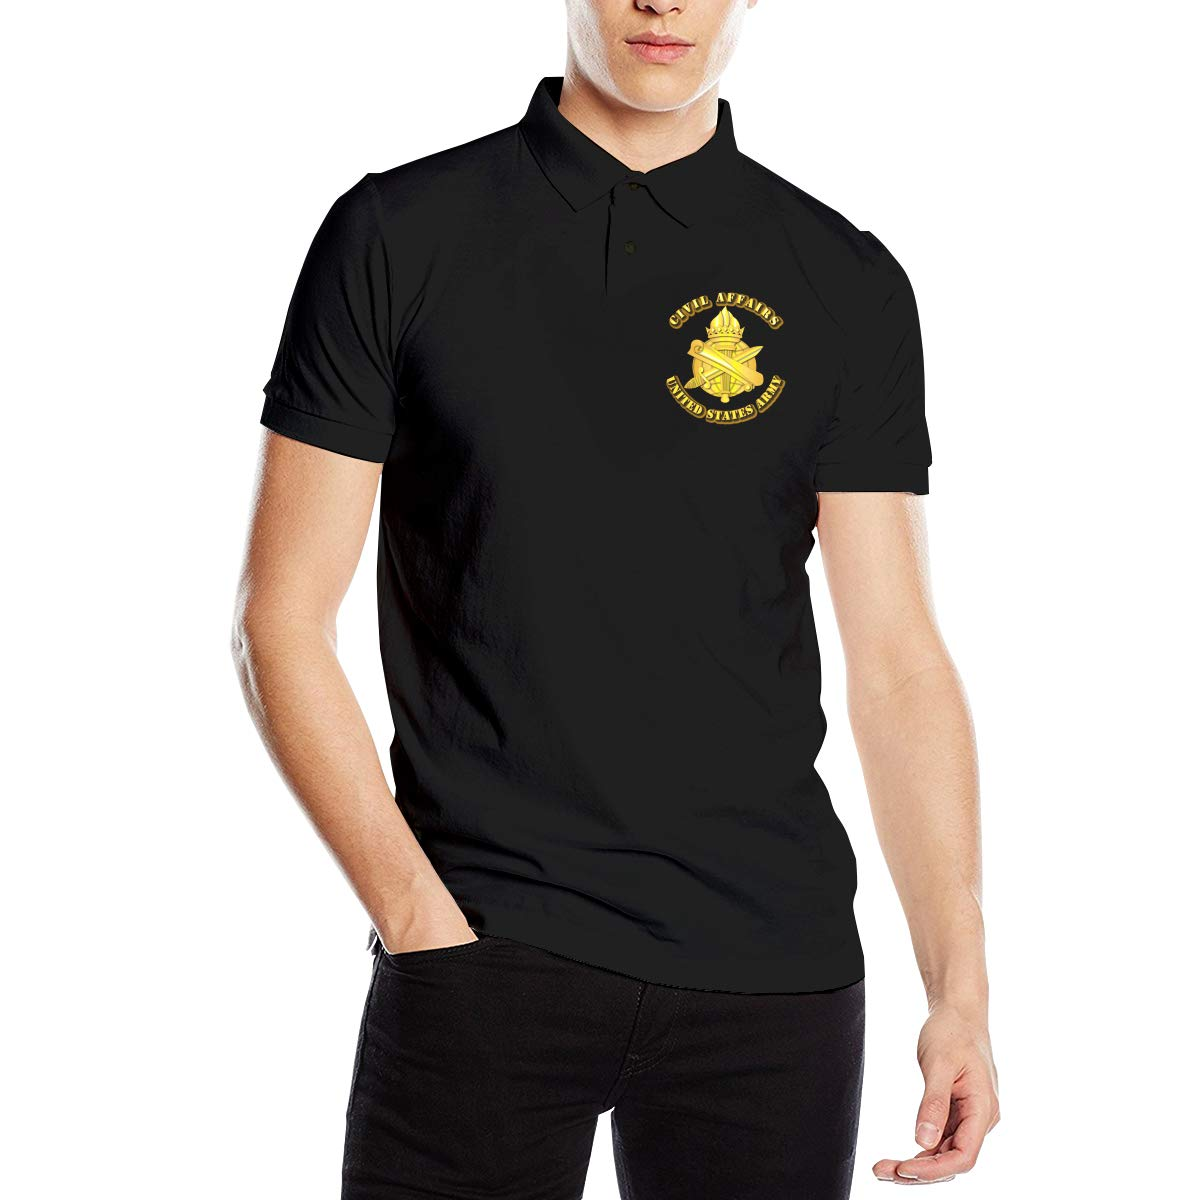 You Know And Good Civil Affairs Mens Regular-Fit Cotton Polo Shirt Short Sleeve